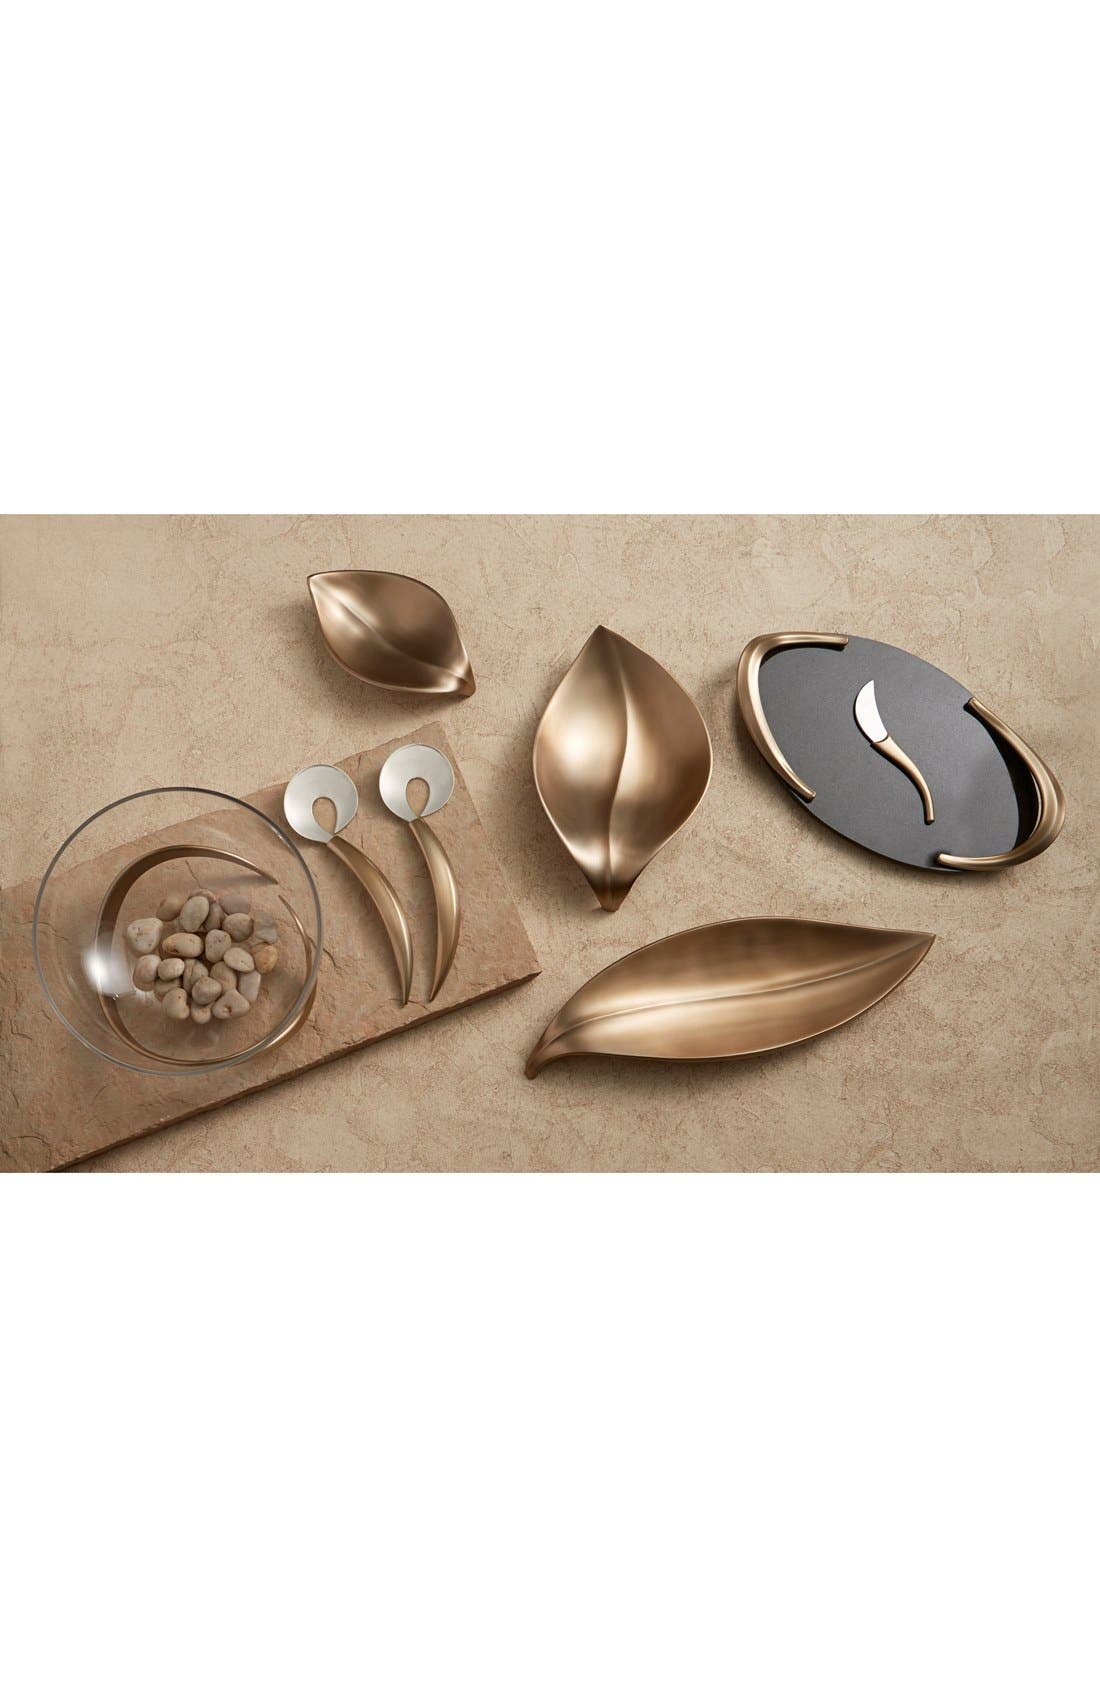 'Eco' Leaf Serving Tray,                             Alternate thumbnail 2, color,                             Gold